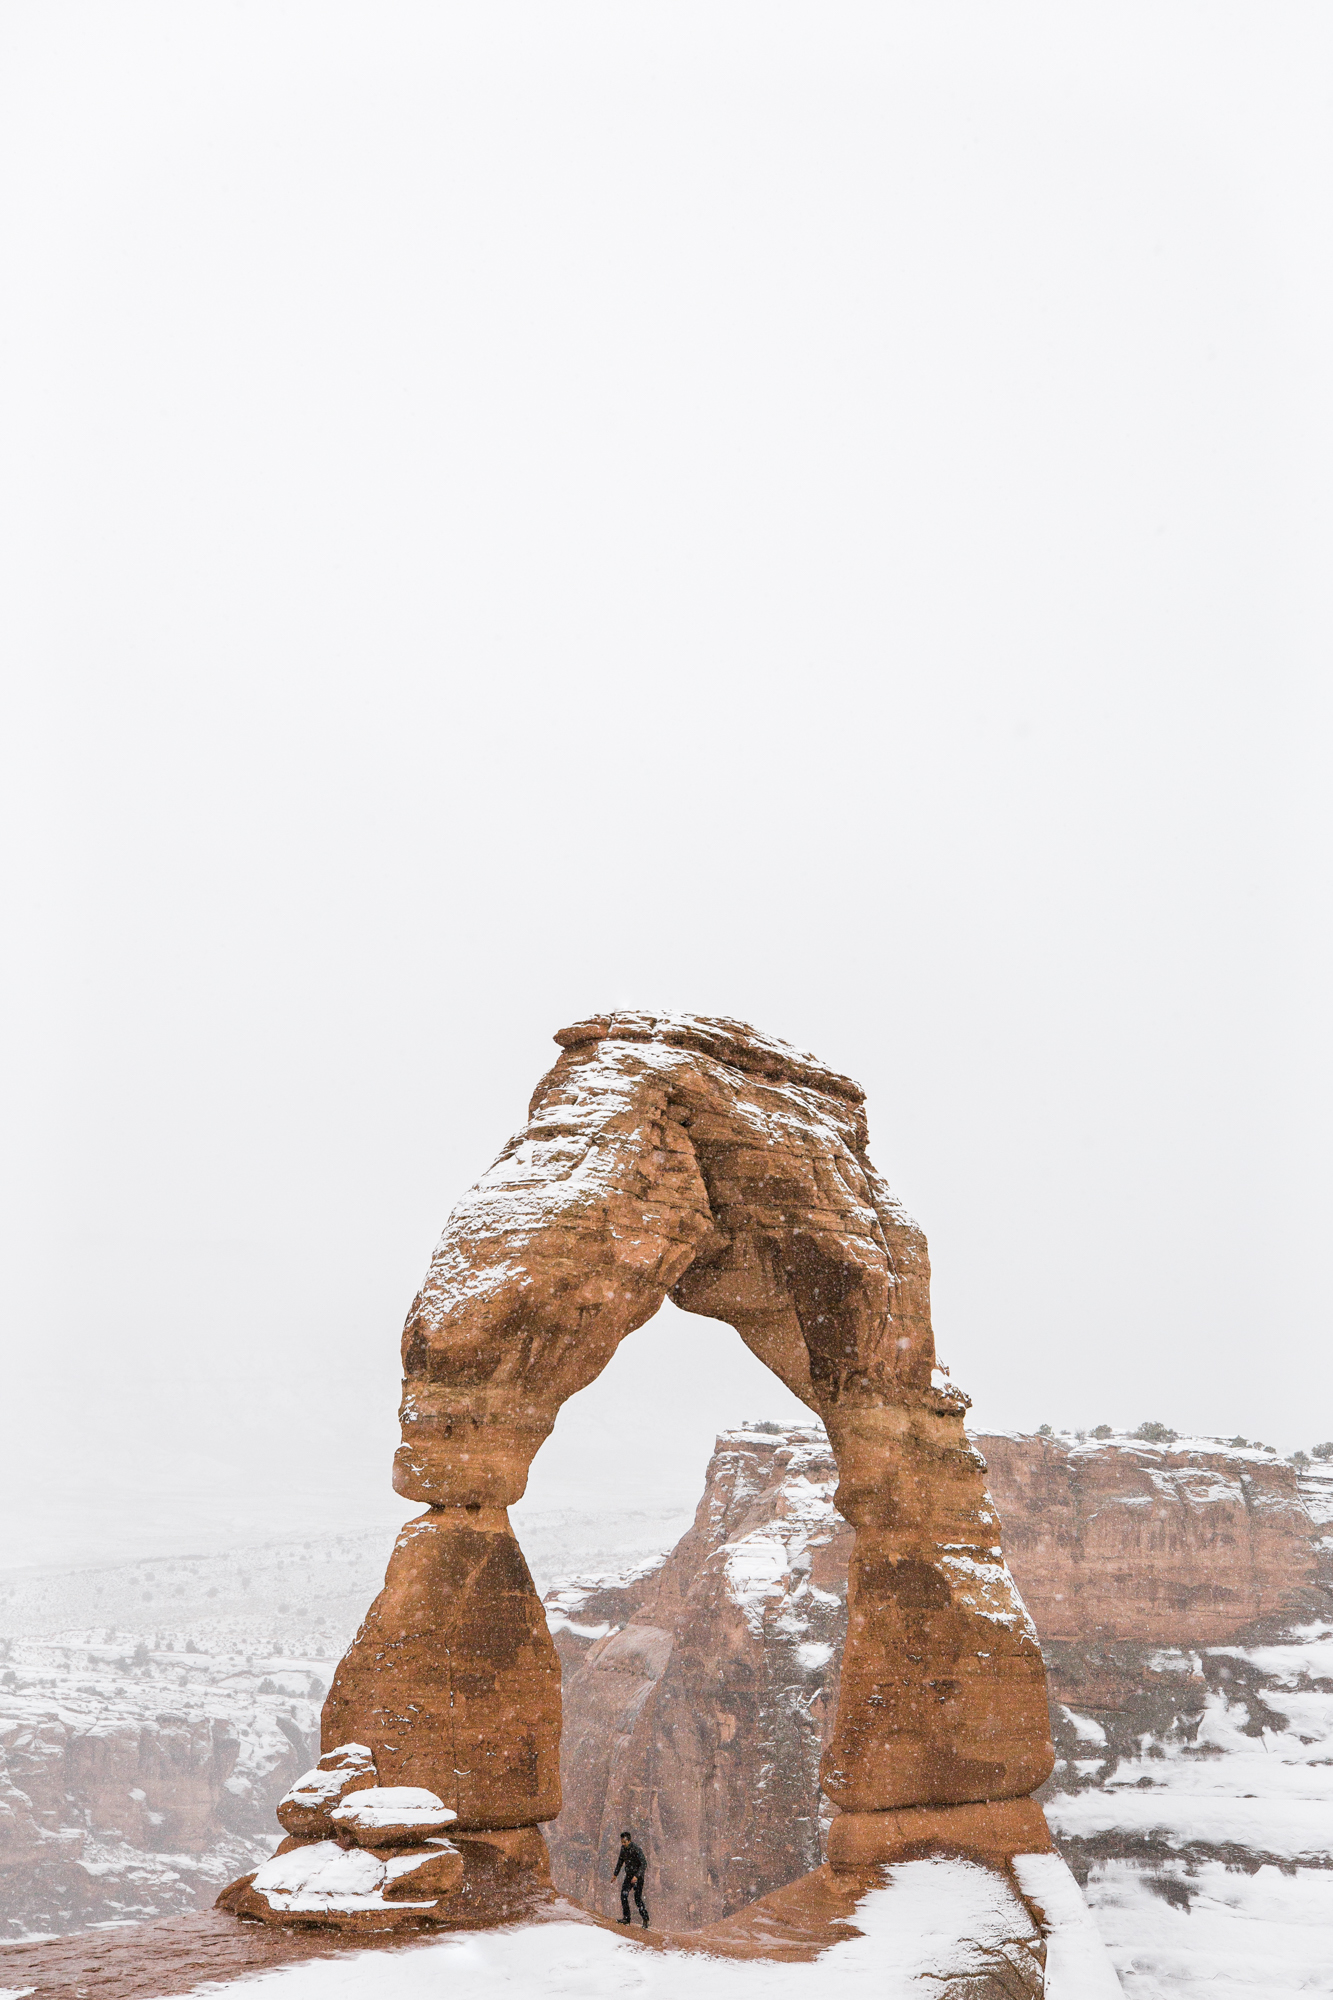 utah road trip southwest travel map emily hary photography destination photographer elopement bryce canyon zion national park goblin valley america the beautiful pass virgin river canyon overlook trail canyonlands delicate arch